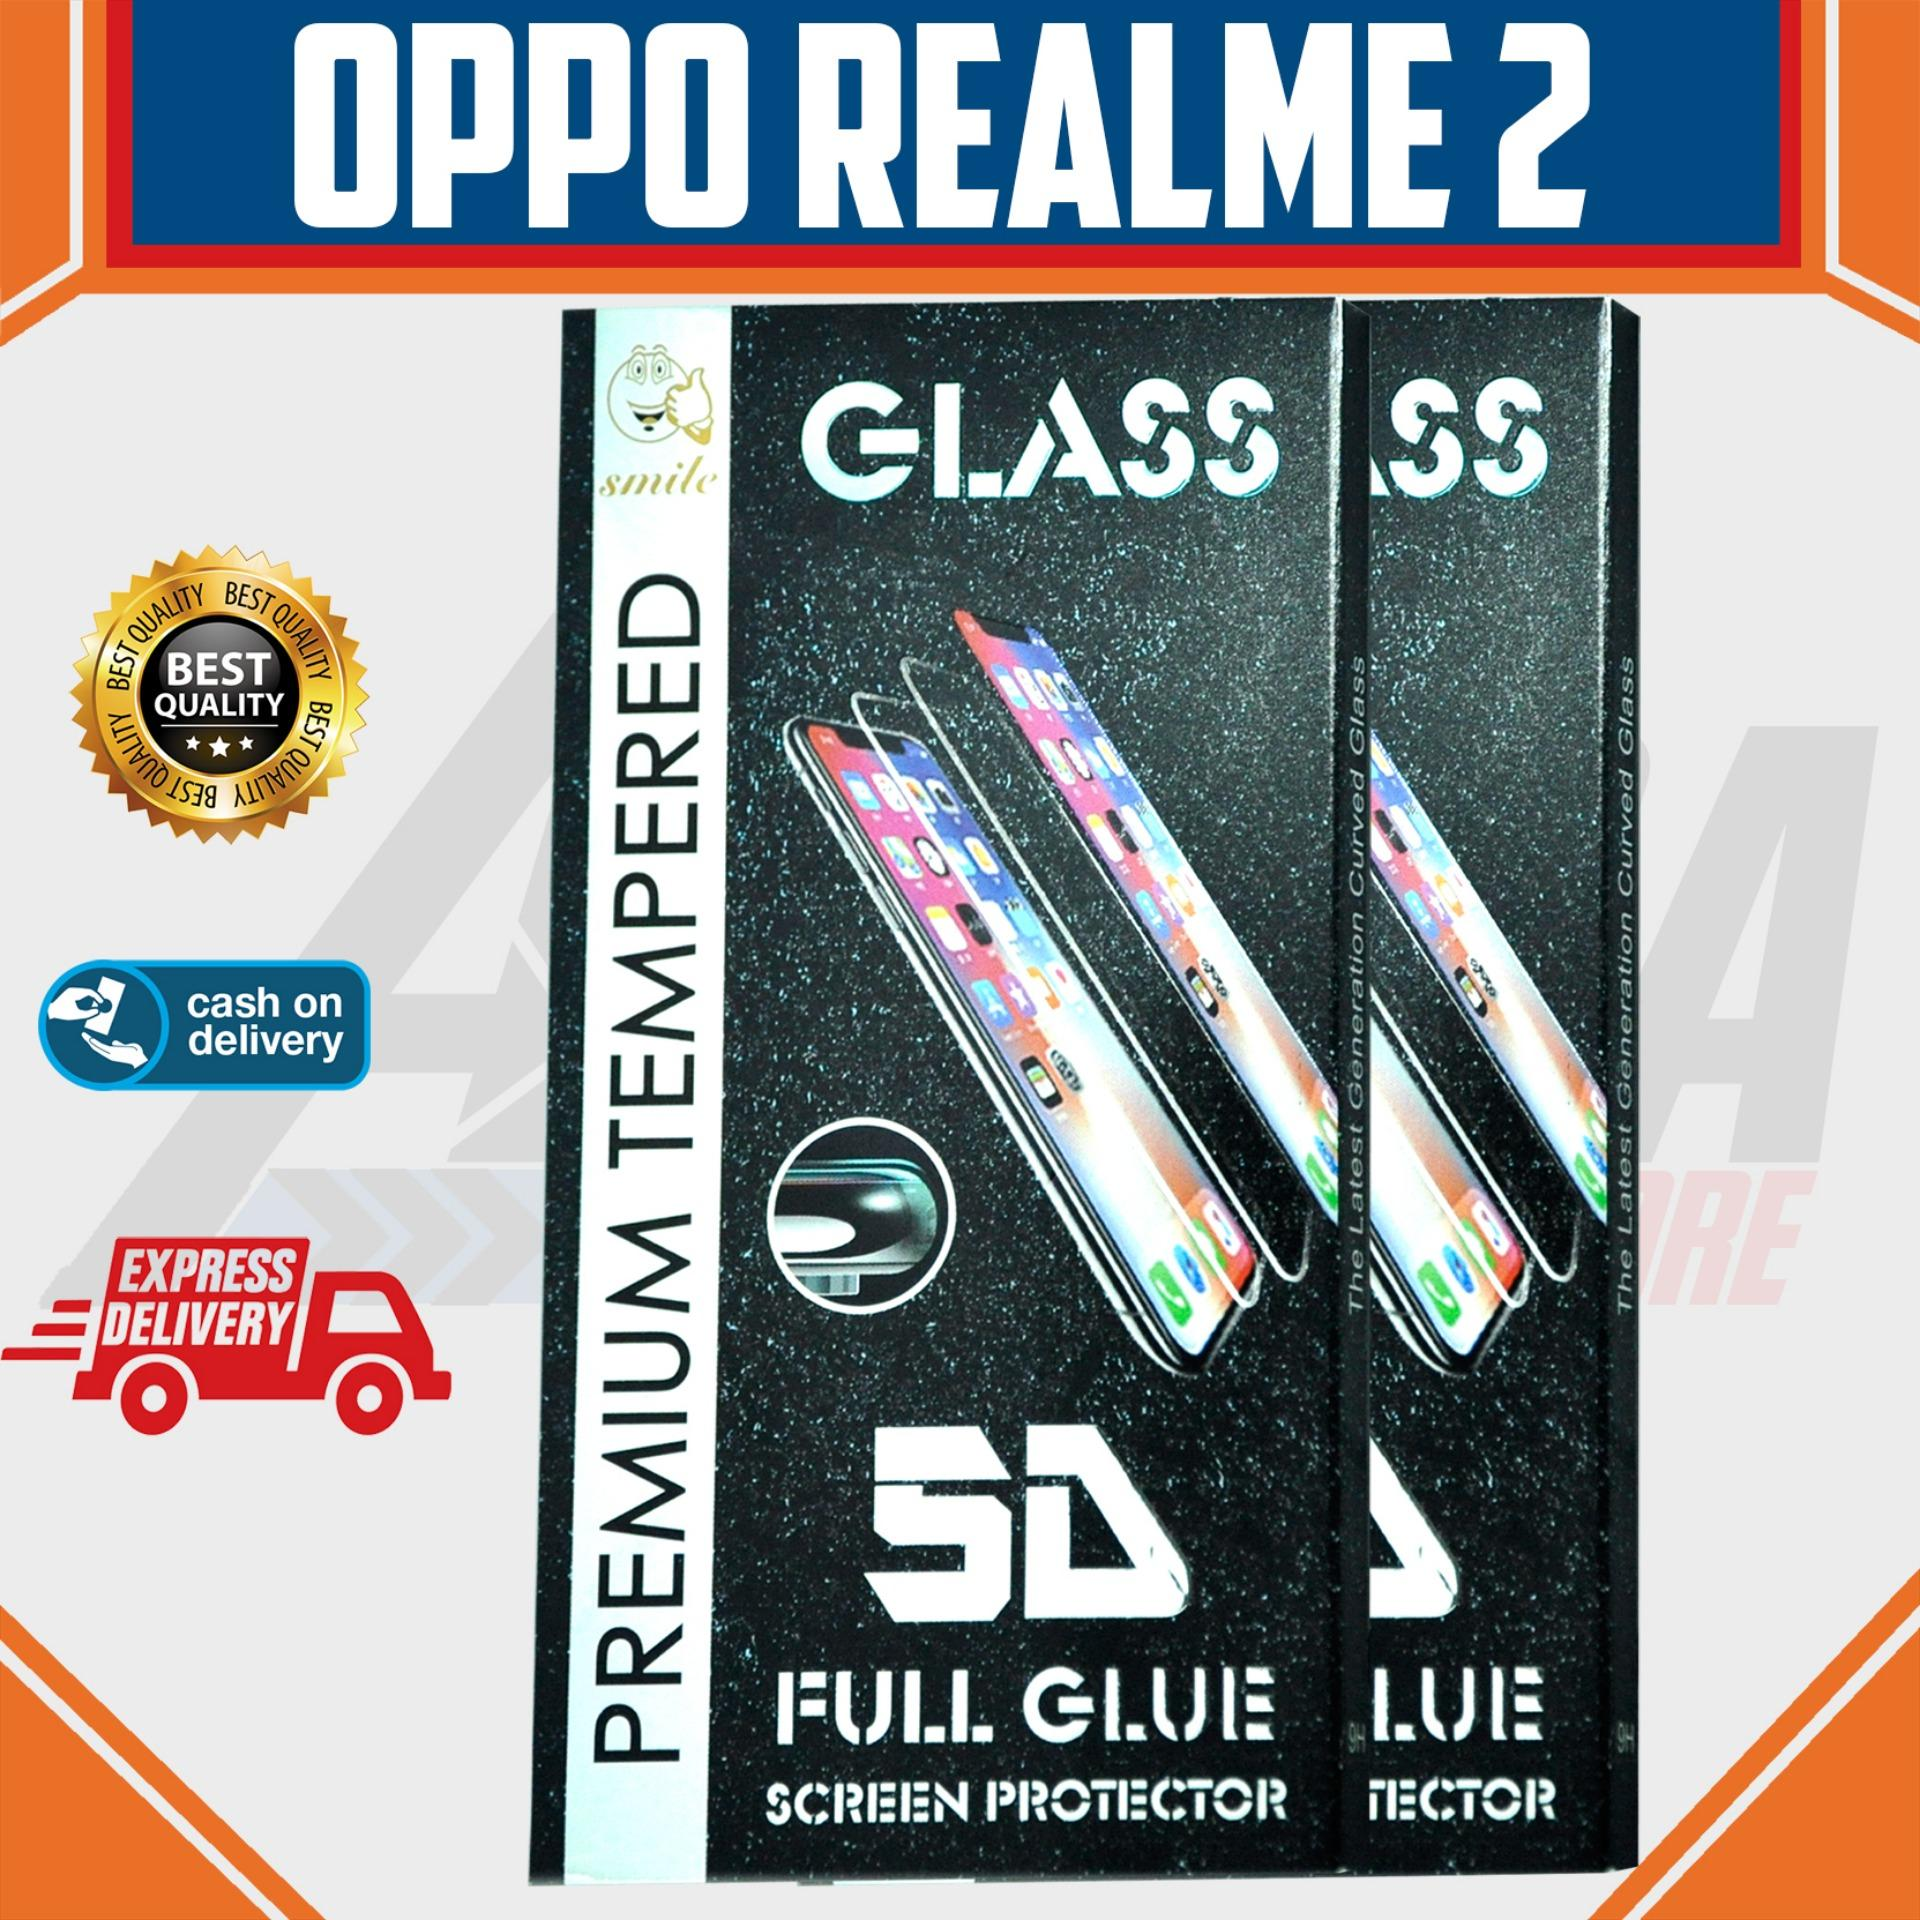 Aldora Tempered Glass Oppo RealMe 2 5D Full Curved Screen Protector Smile Series Premium HD Quality